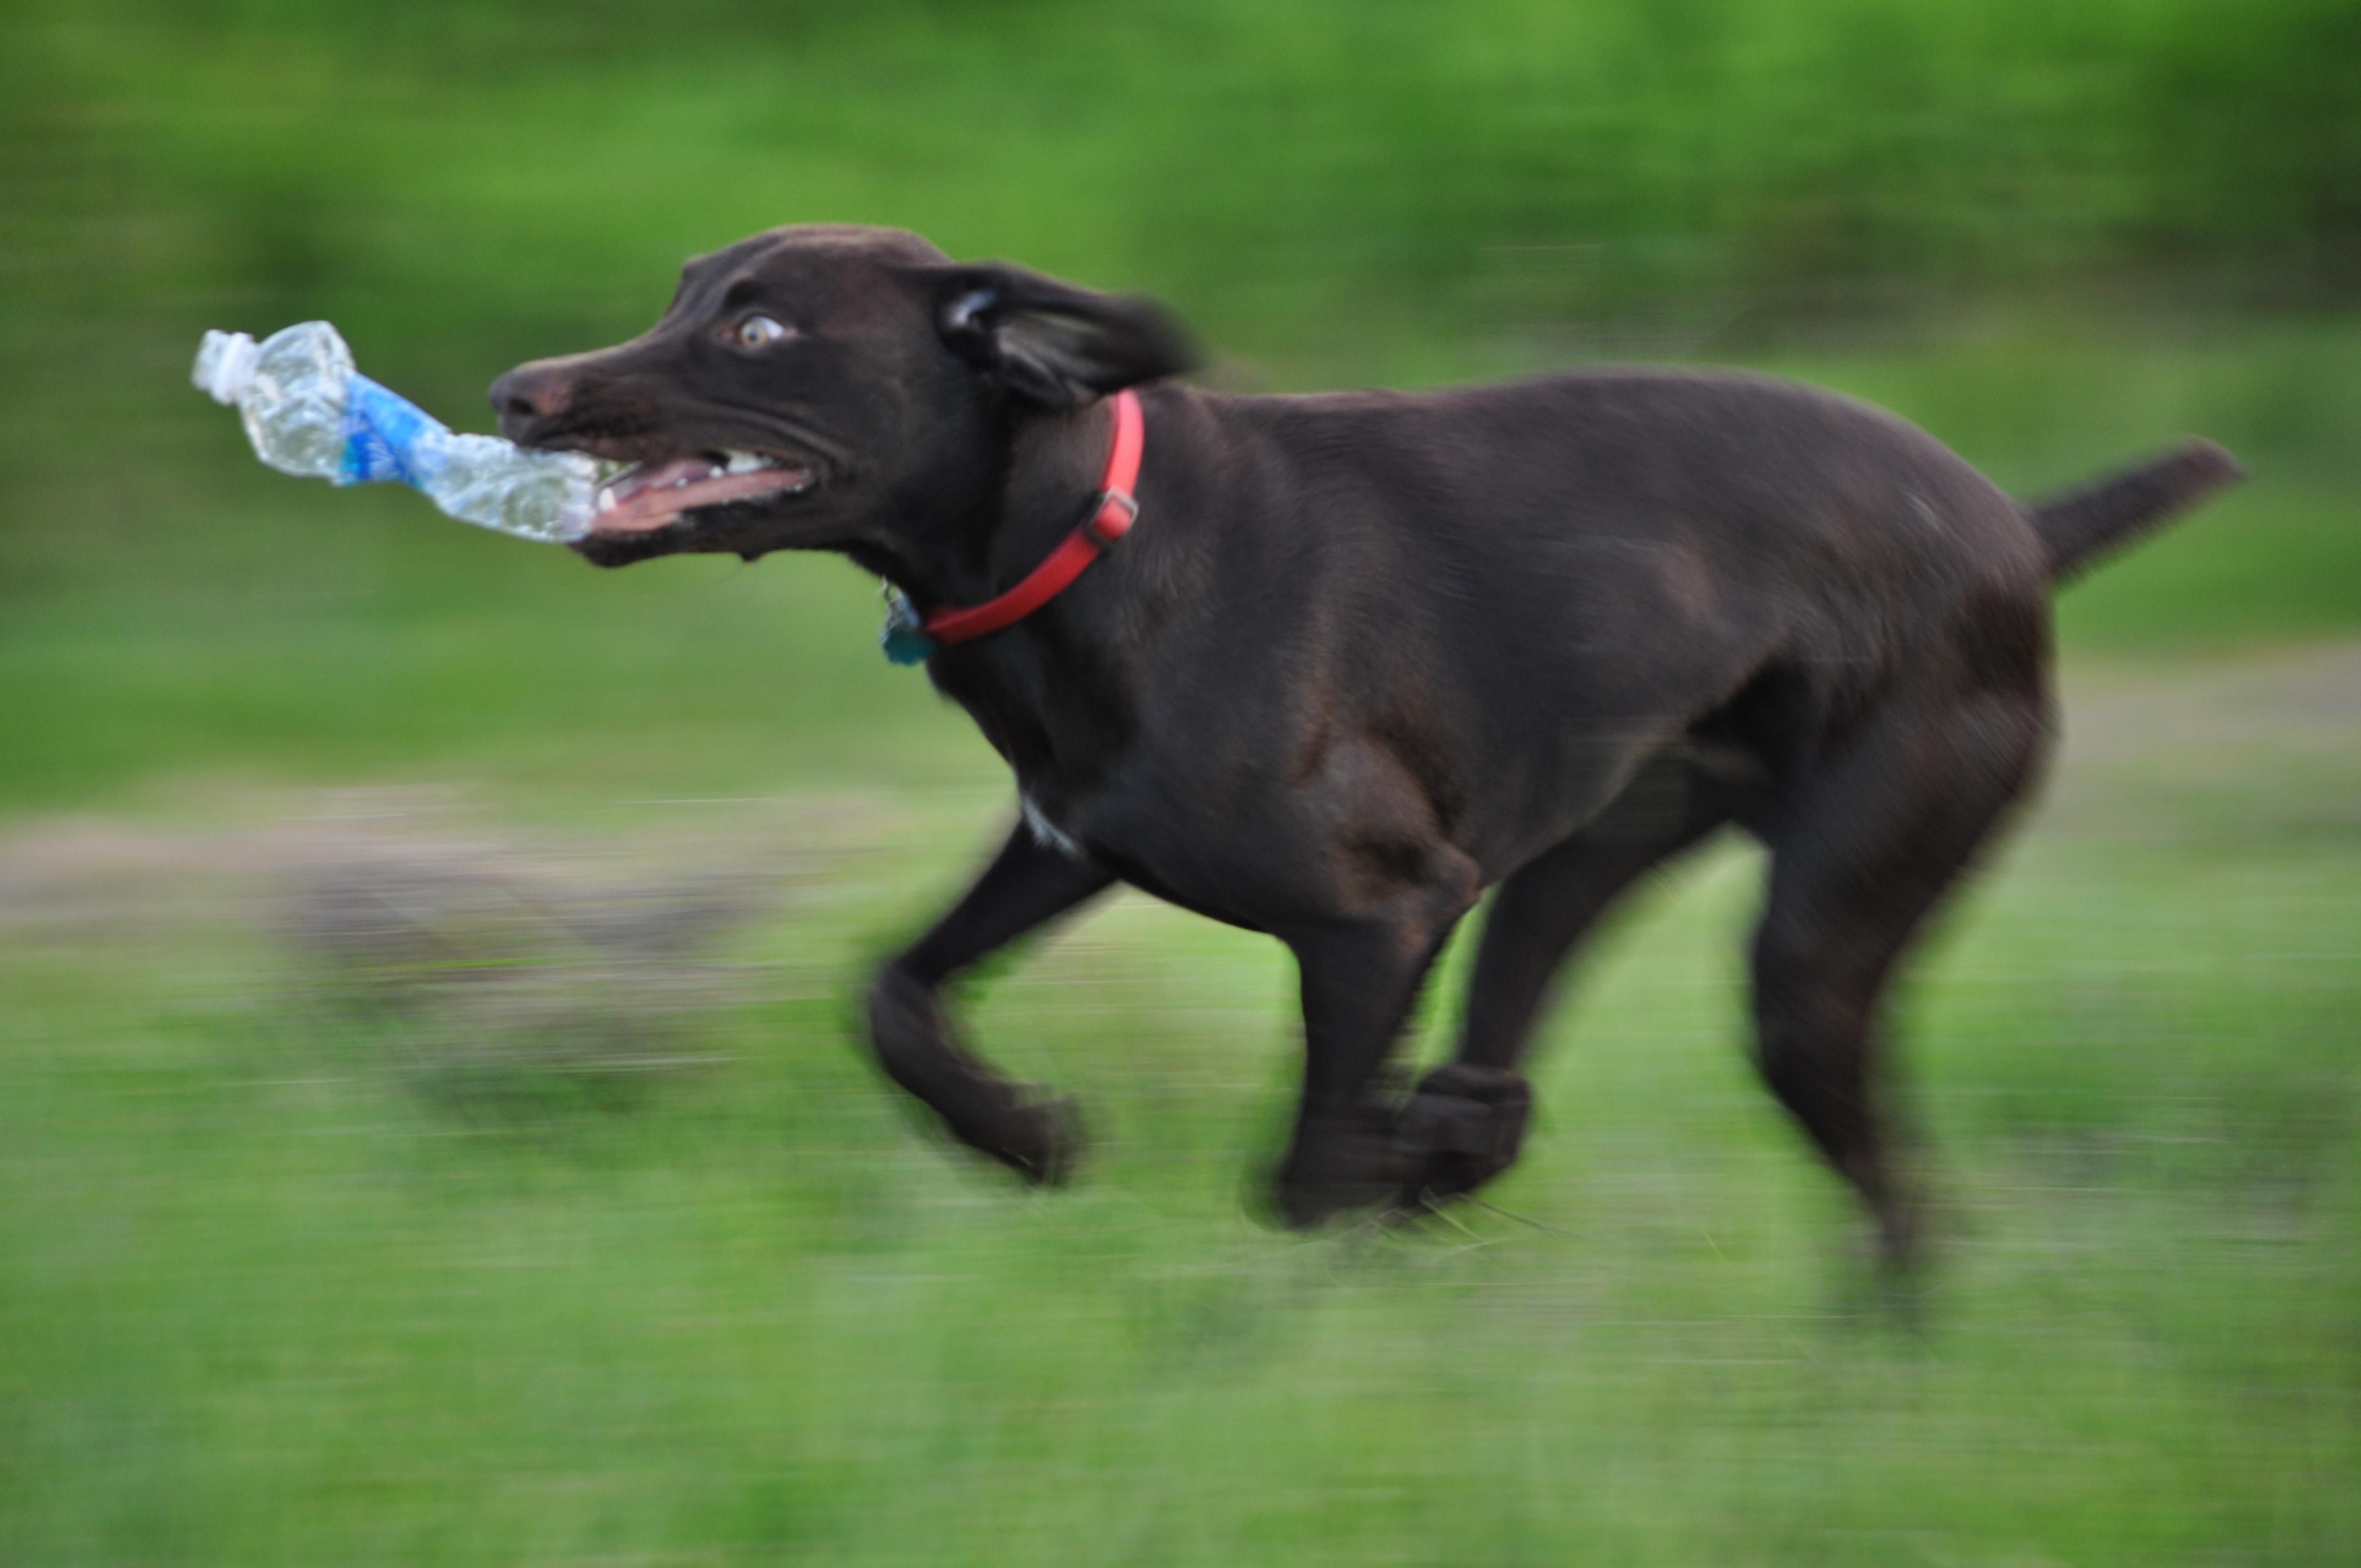 Water bottles are crack for my dog. I was drinking this when he did a fly-by and took off.